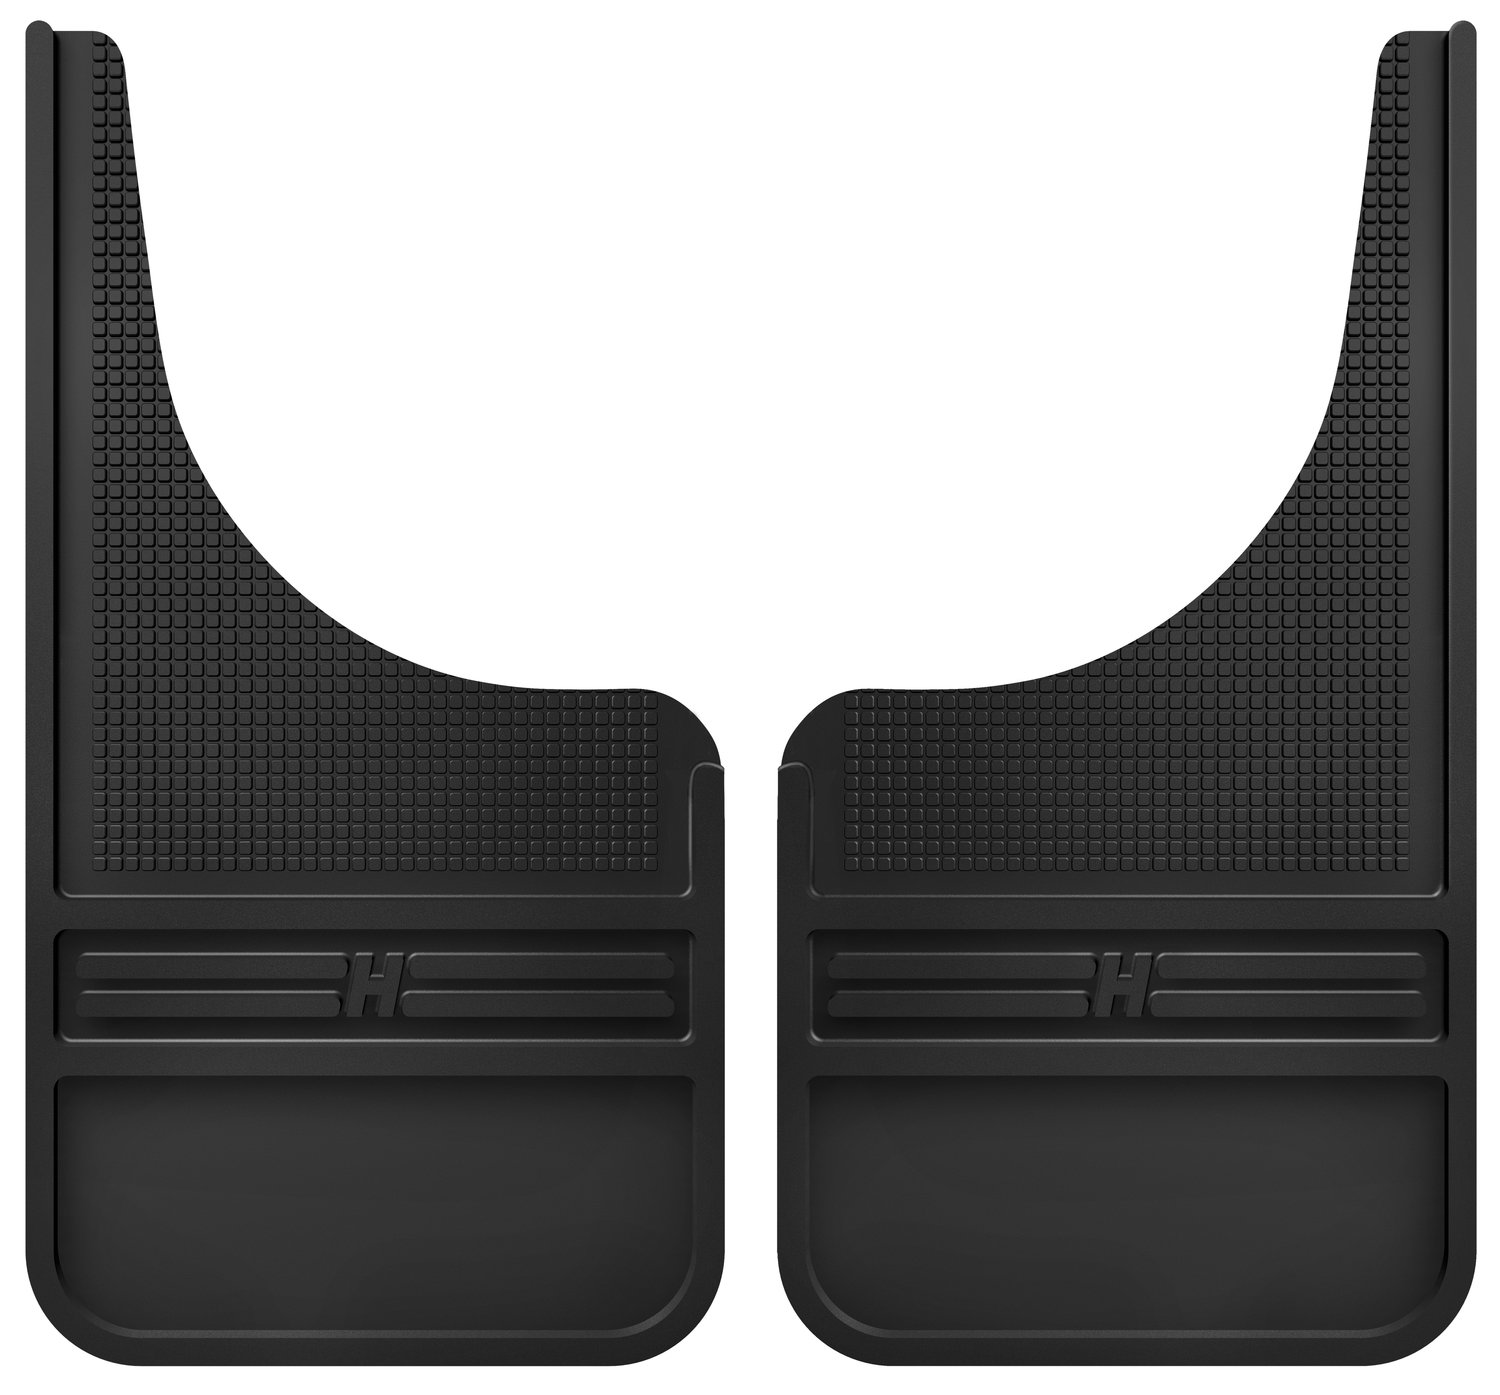 Husky Liners 55000 Black Universal Front Mud Flap Without Weight, 1 Pack